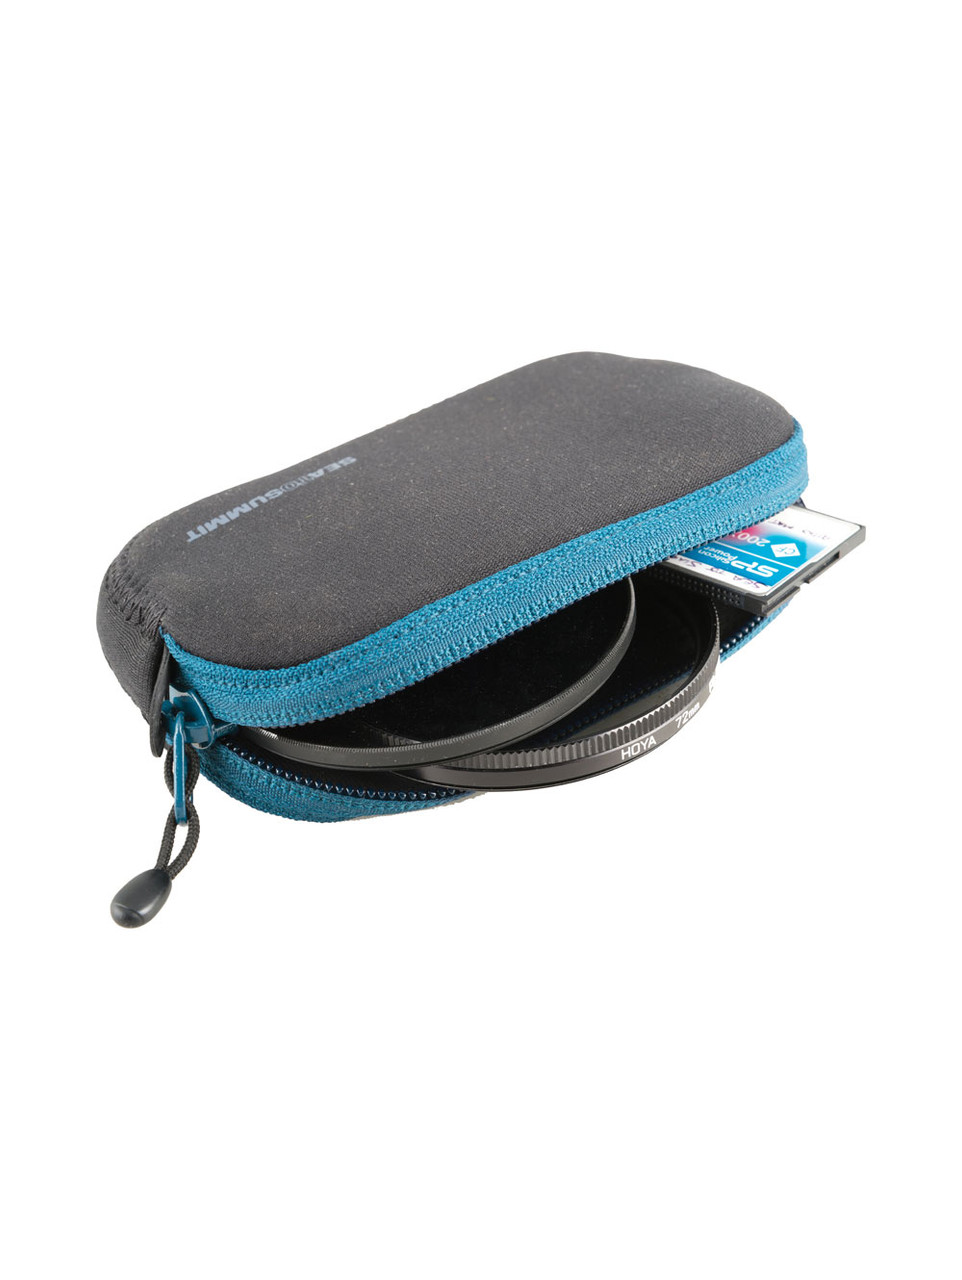 Sea to Summit Padded Pouch